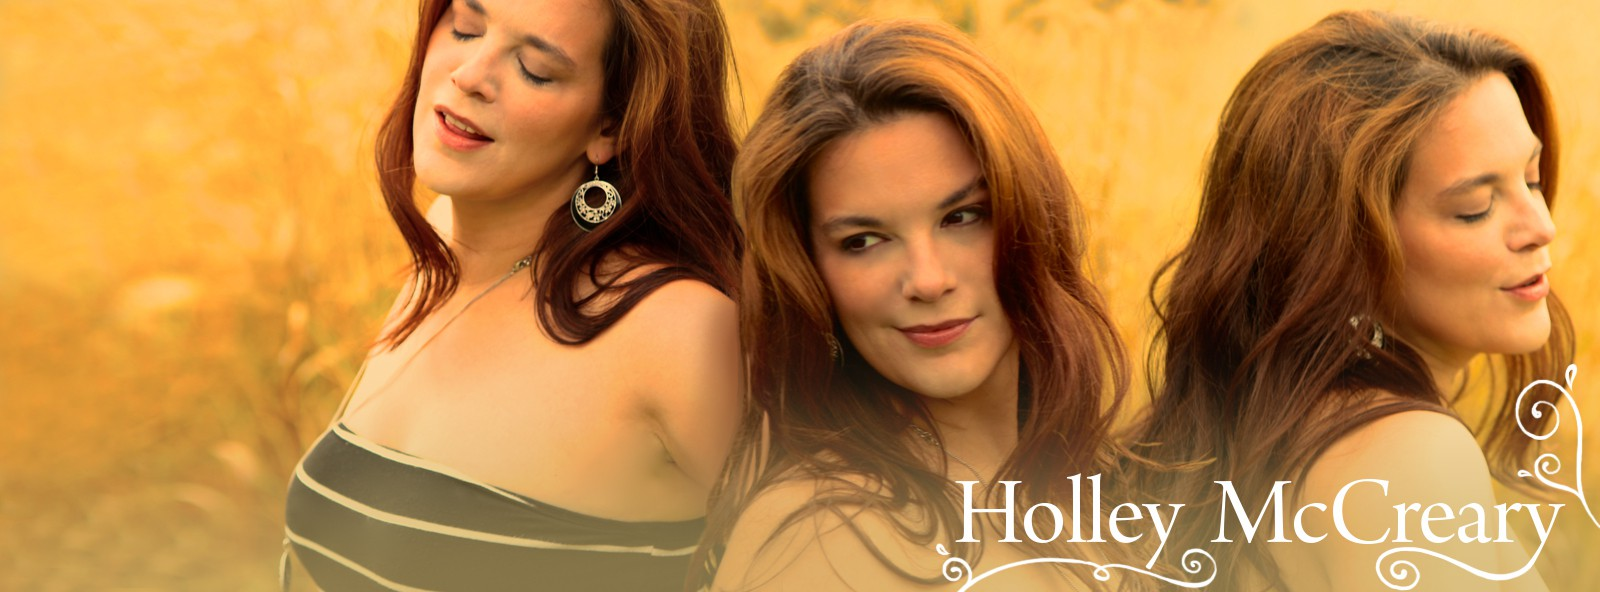 Holley McCreary New Facebook Cover